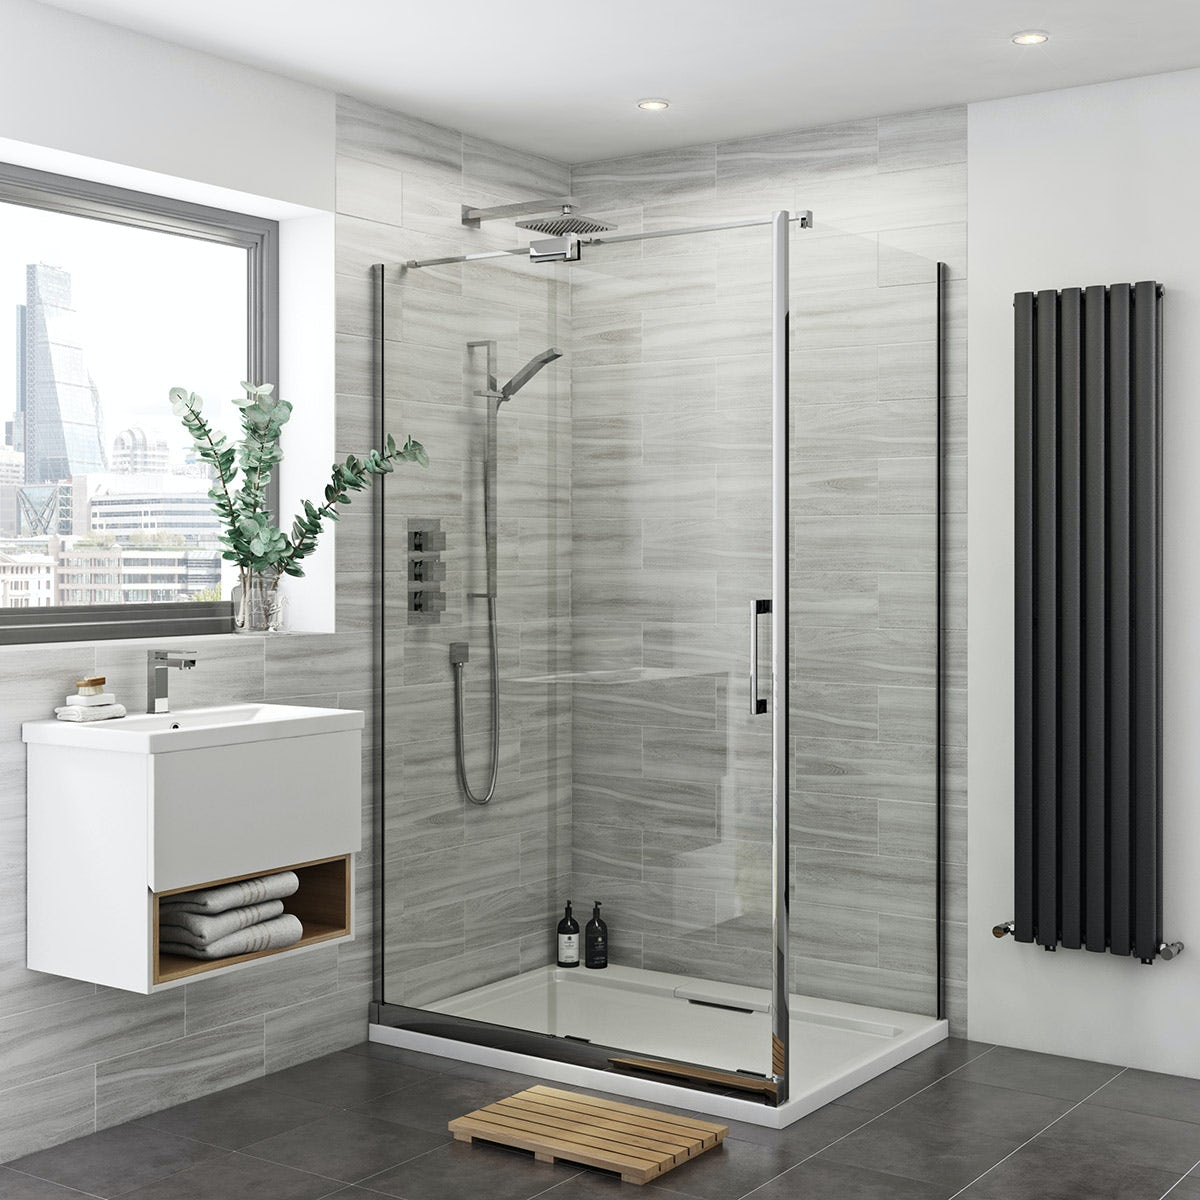 Mode Carter premium 8mm easy clean left handed shower enclosure 1400 x 900